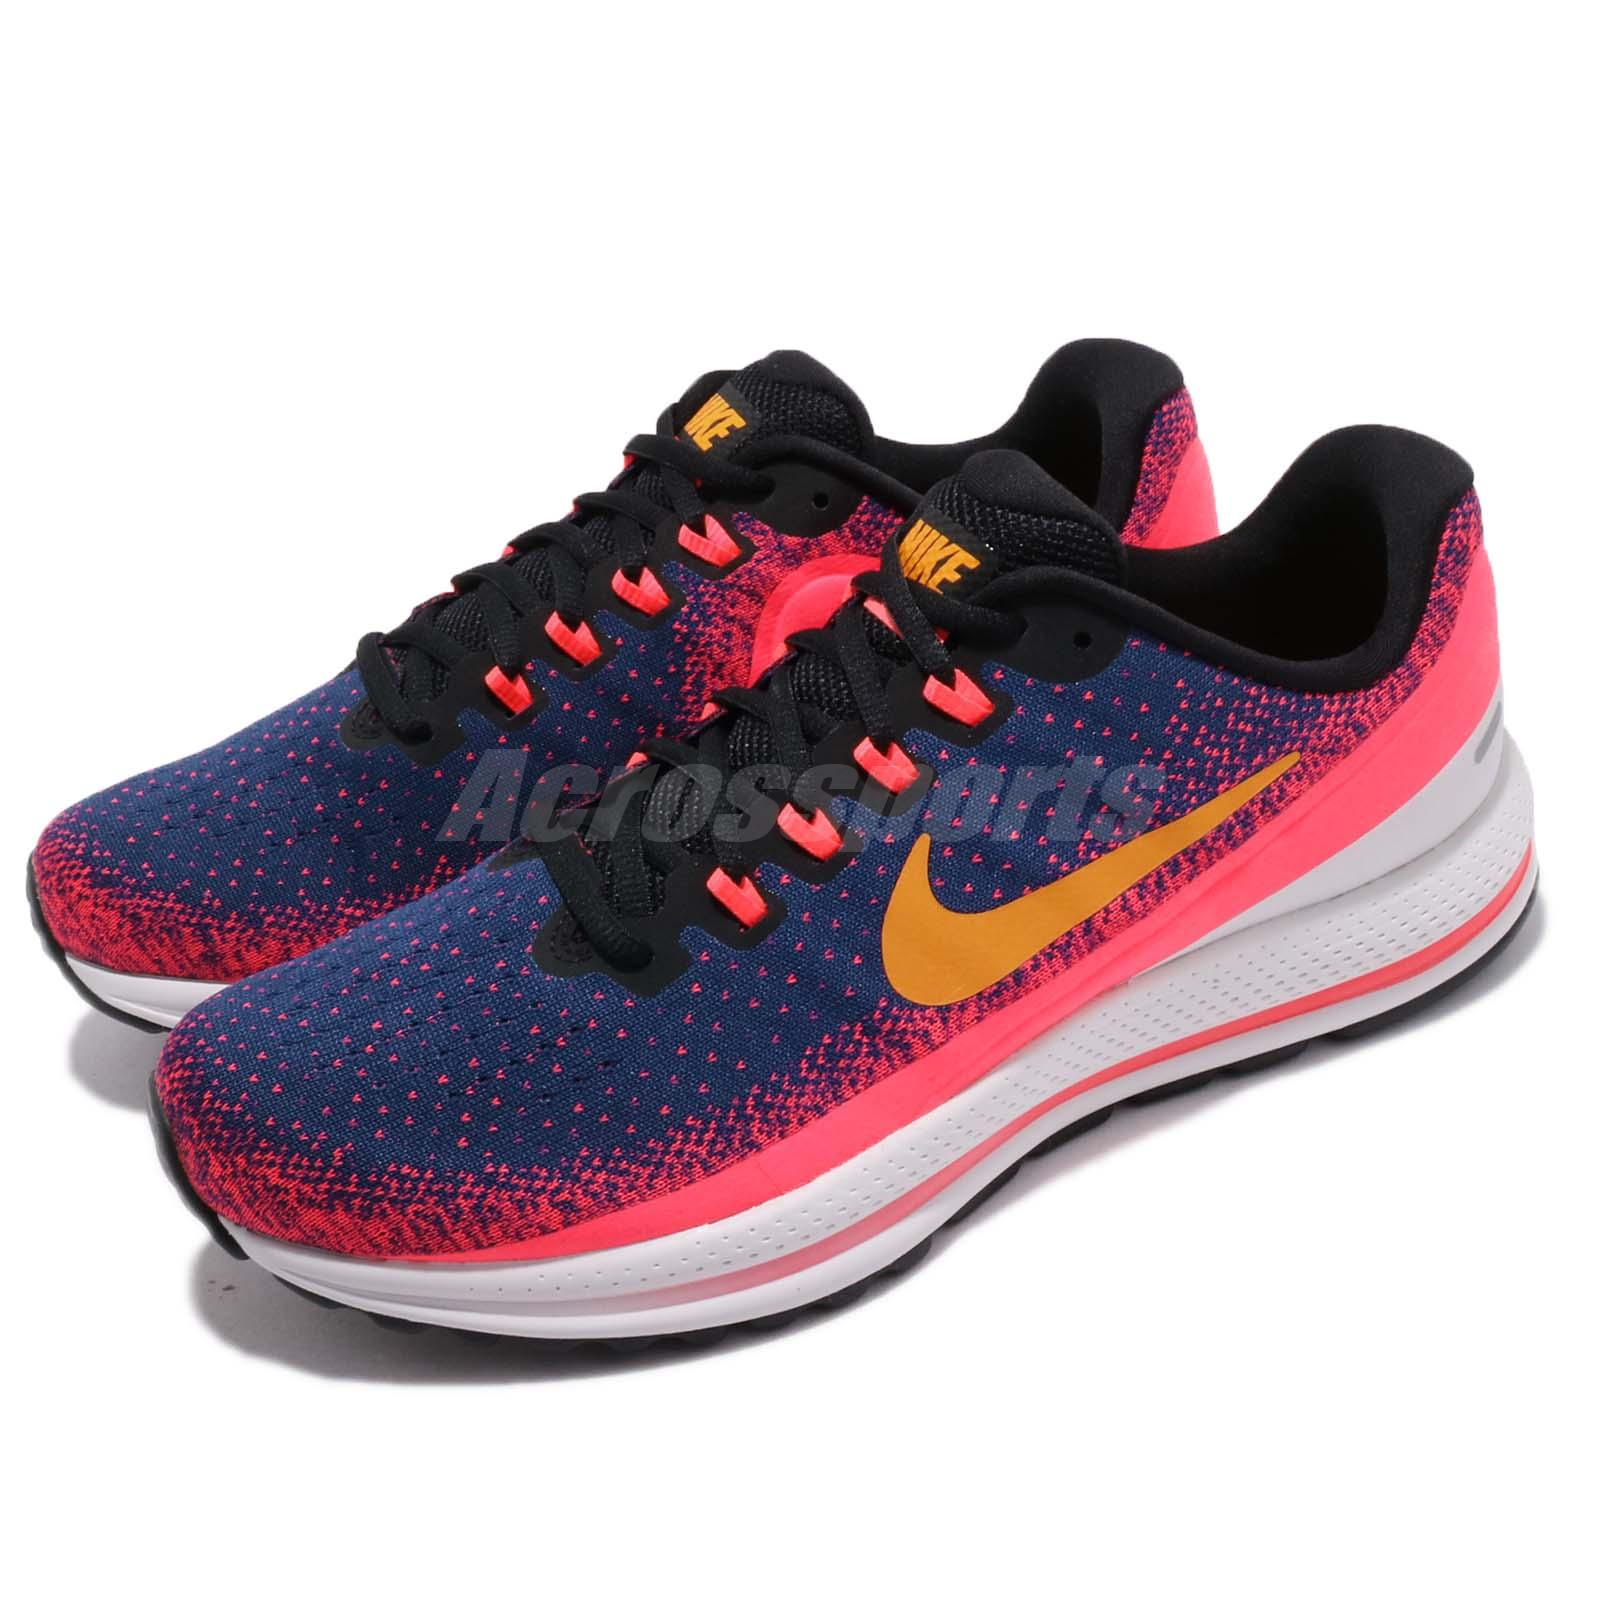 sports shoes c7eb5 6a163 Details about Nike Air Zoom Vomero 13 XIII Blue Void Orange Peel Men  Running Shoes 922908-483